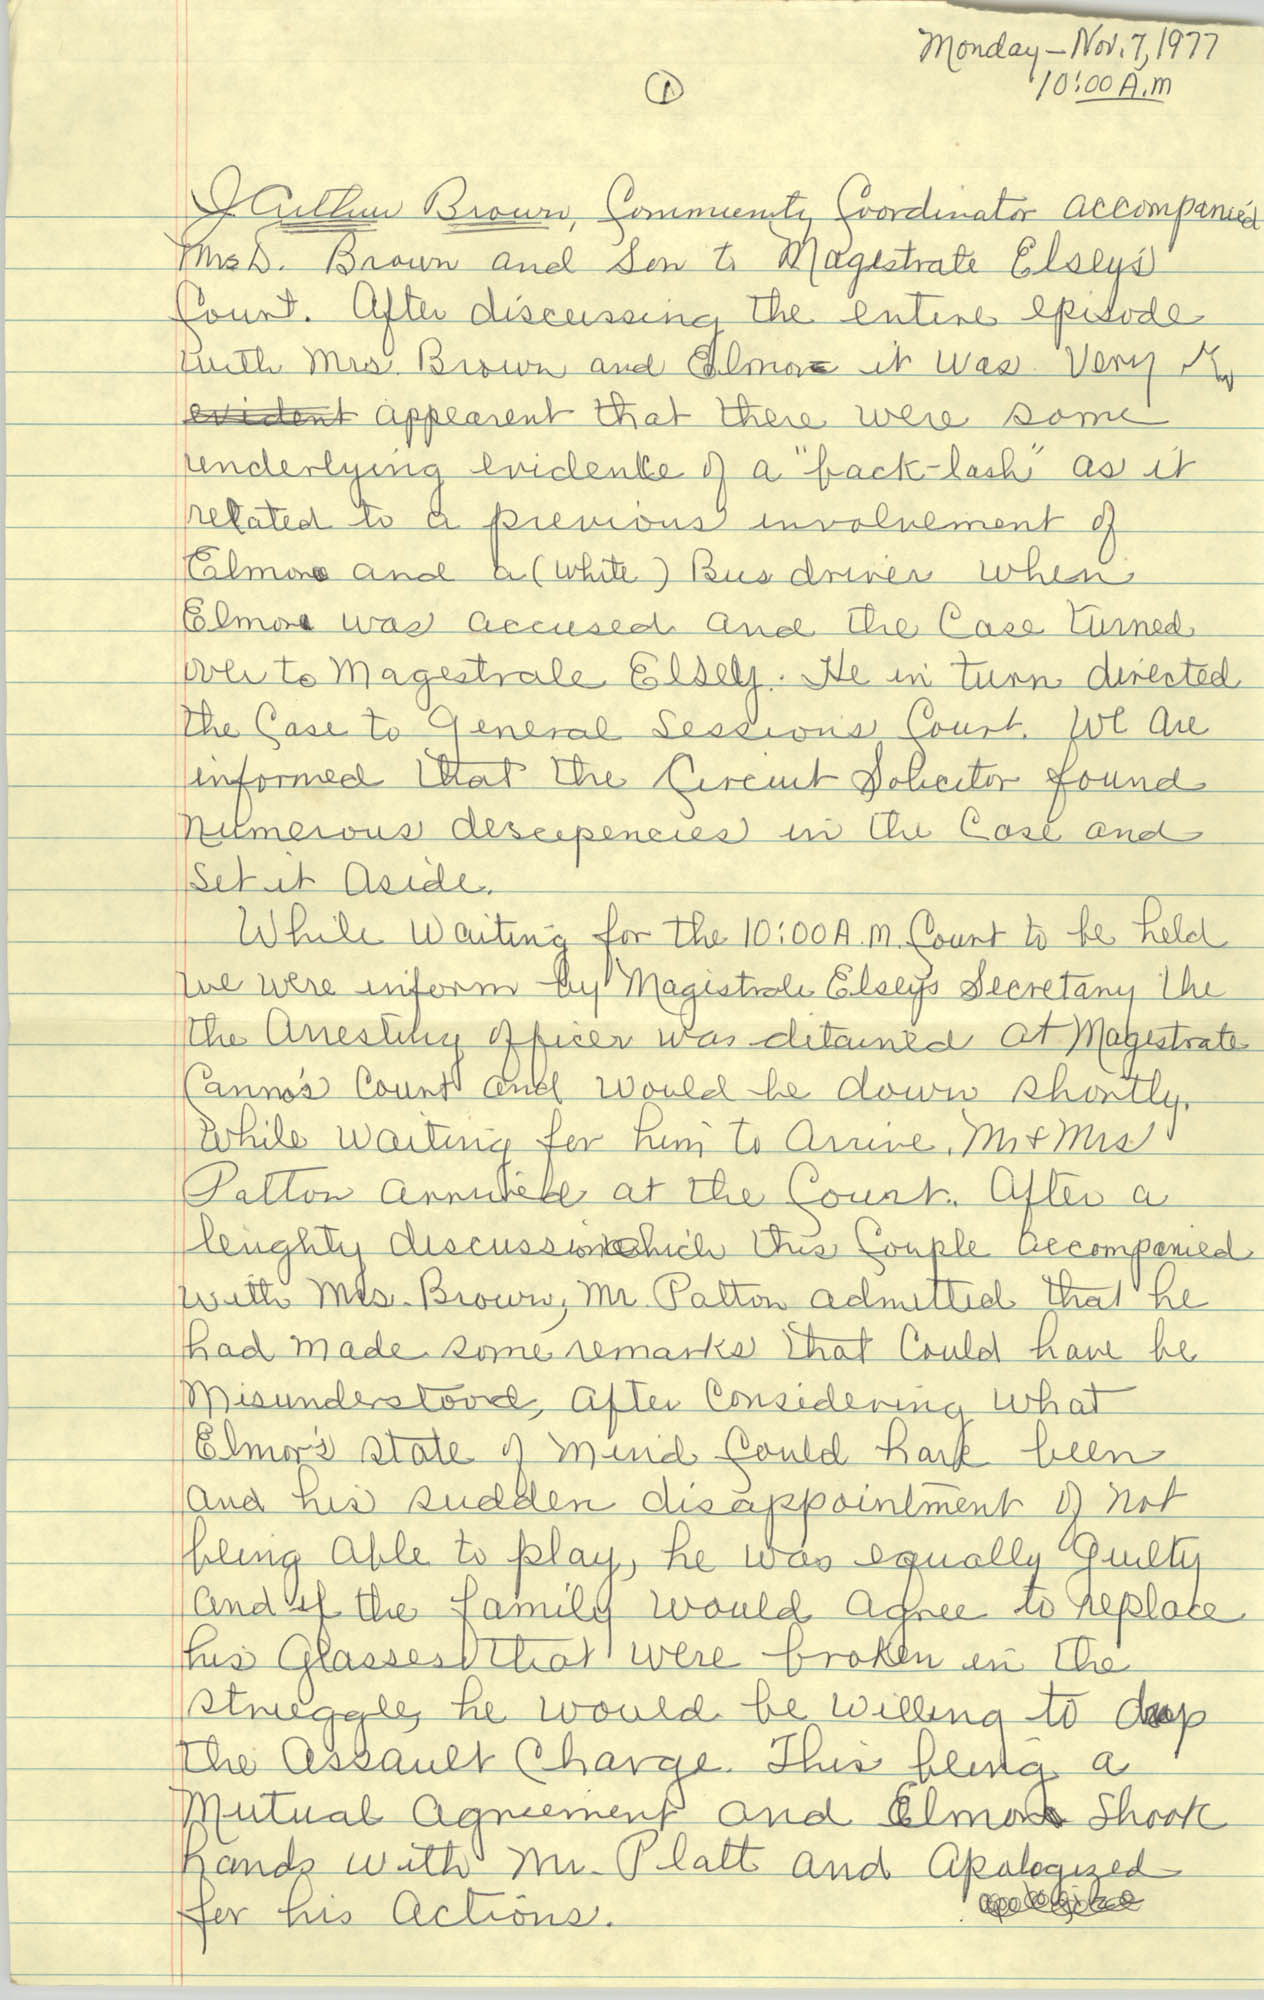 Handwritten COBRA Notes, November 7, 1977